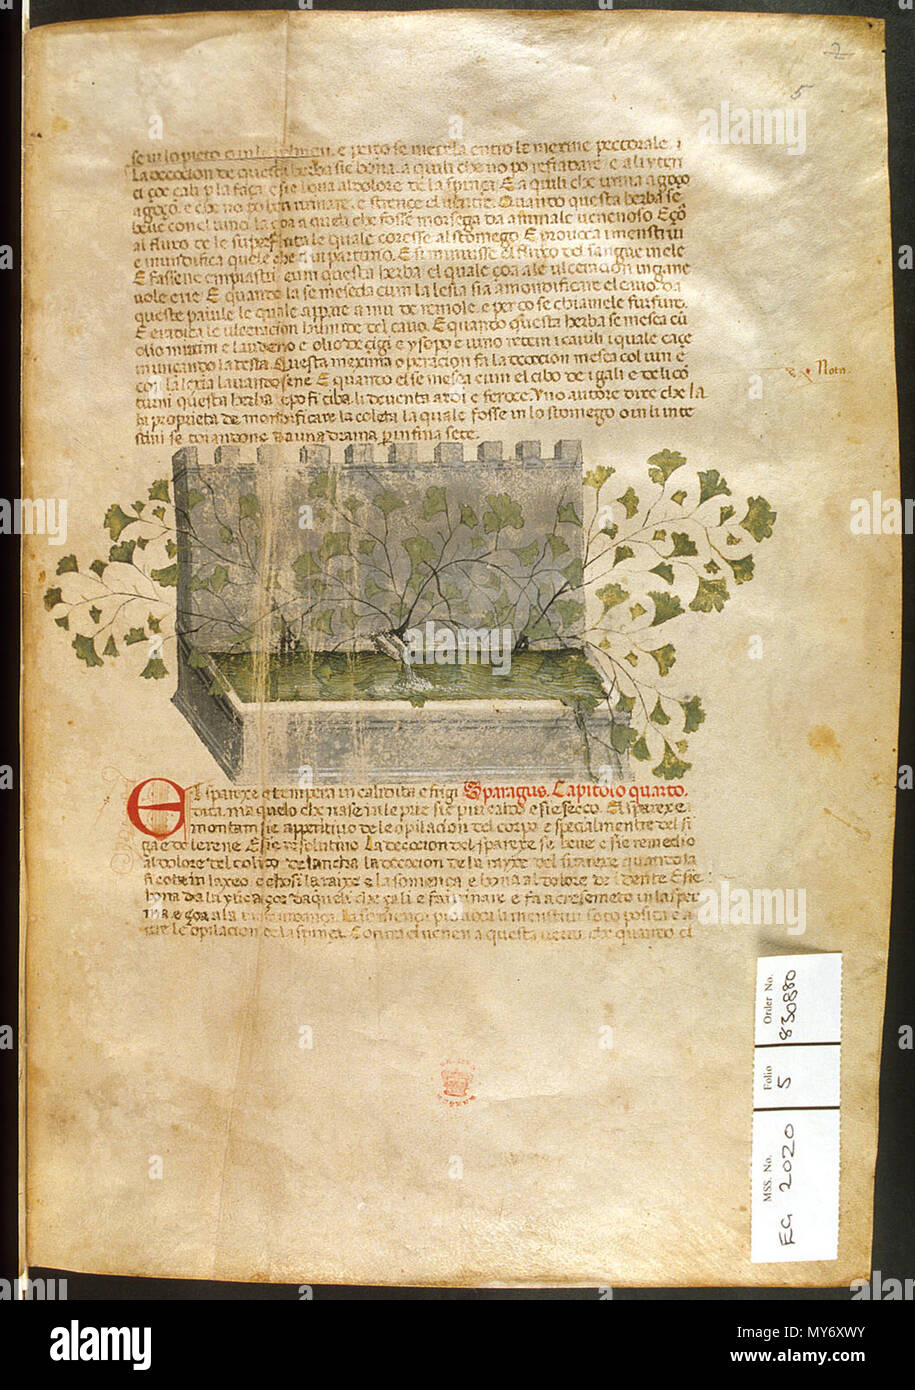 . English: arapion the Younger, Translation of the herbal (The 'Carrara Herbal'), including the Liber agrega, Herbolario volgare; De medicamentis, with index (ff. 263-265) Italy, N. (Padua); between c. 1390 and 1404 . between c. 1390 and 1404. An Italian translation, possibly from a Latin translation, of a treatise orginally written in Arabic by Serapion the Younger (Ibn Sarabi, likely 12th century). 99 Carrara Herbal05 - Stock Image